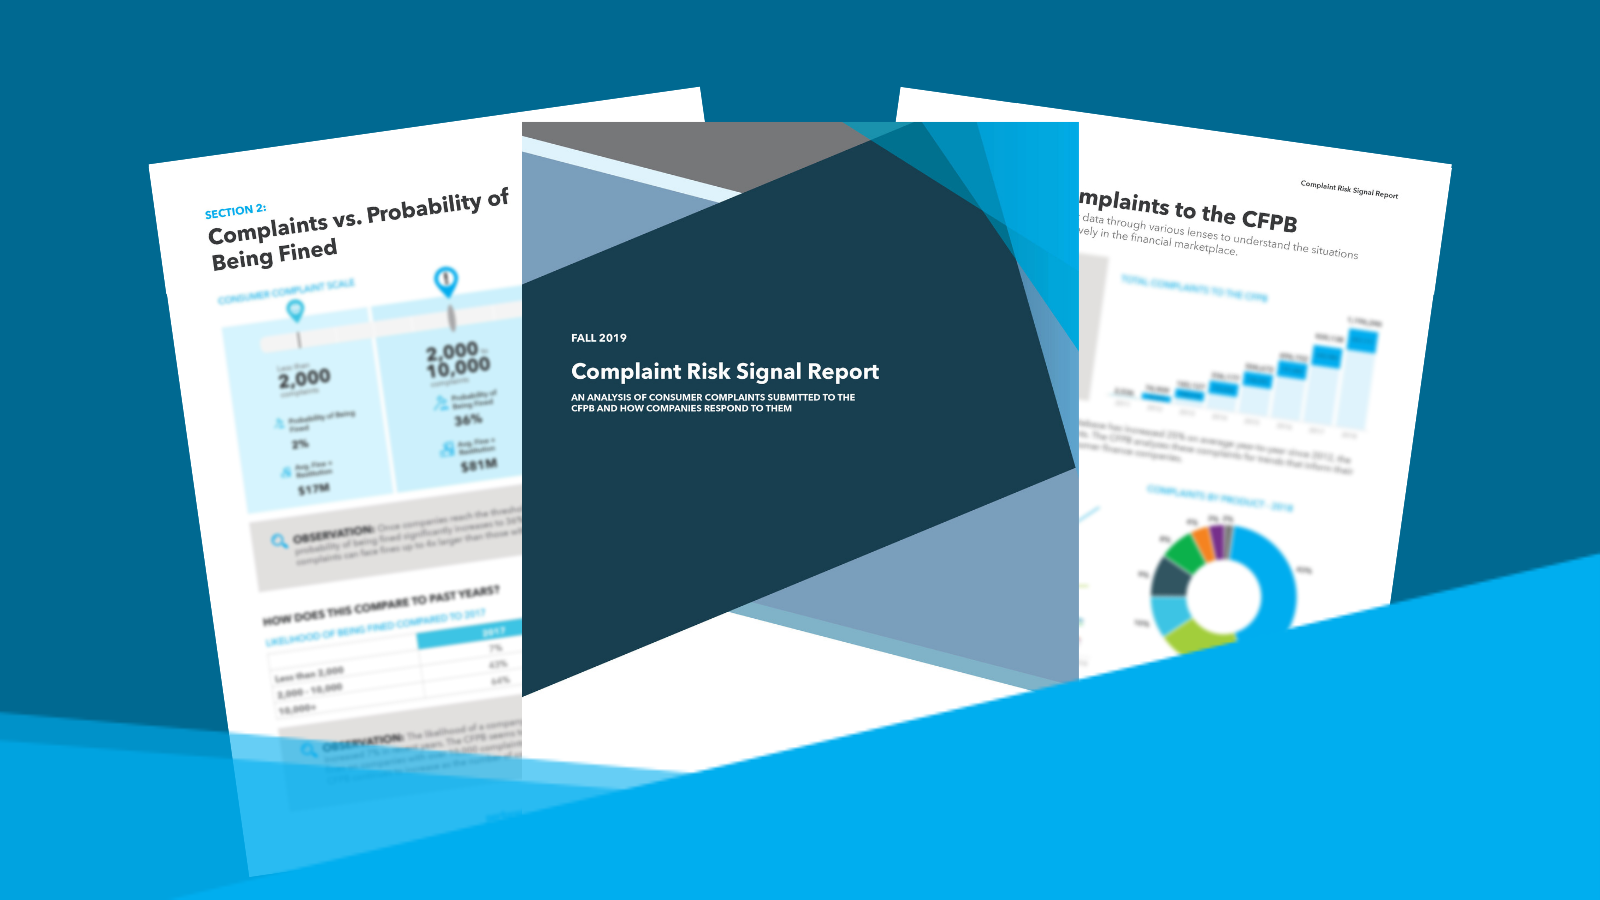 [REPORT] Understanding Consumer Complaint Trends to Avoid Regulatory Actions